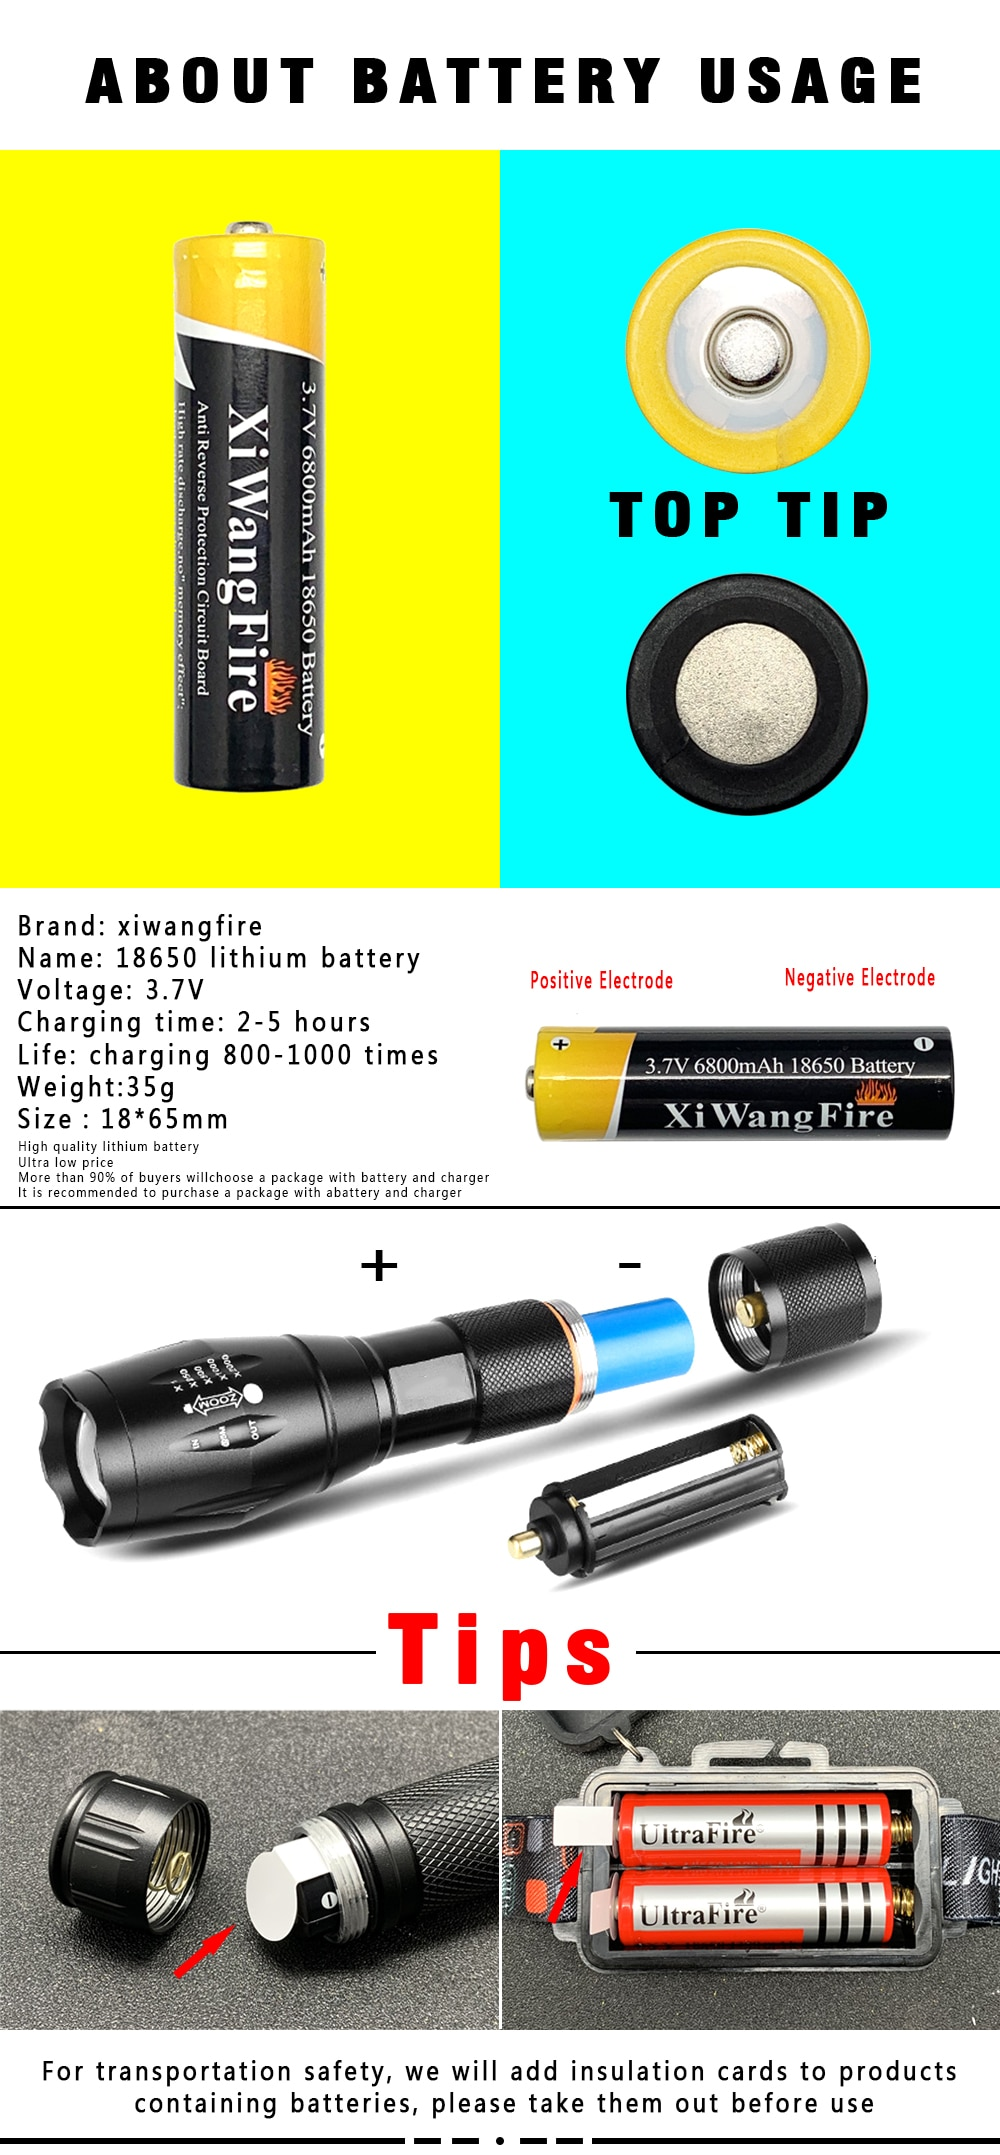 H4f28905dad3447a8a457eab812eab3c3Z - Portable Powerful LED Lamp XML-T6 Flashlight Linterna Torch Uses 18650 Chargeable Battery Outdoor Camping Tactics Flash Light